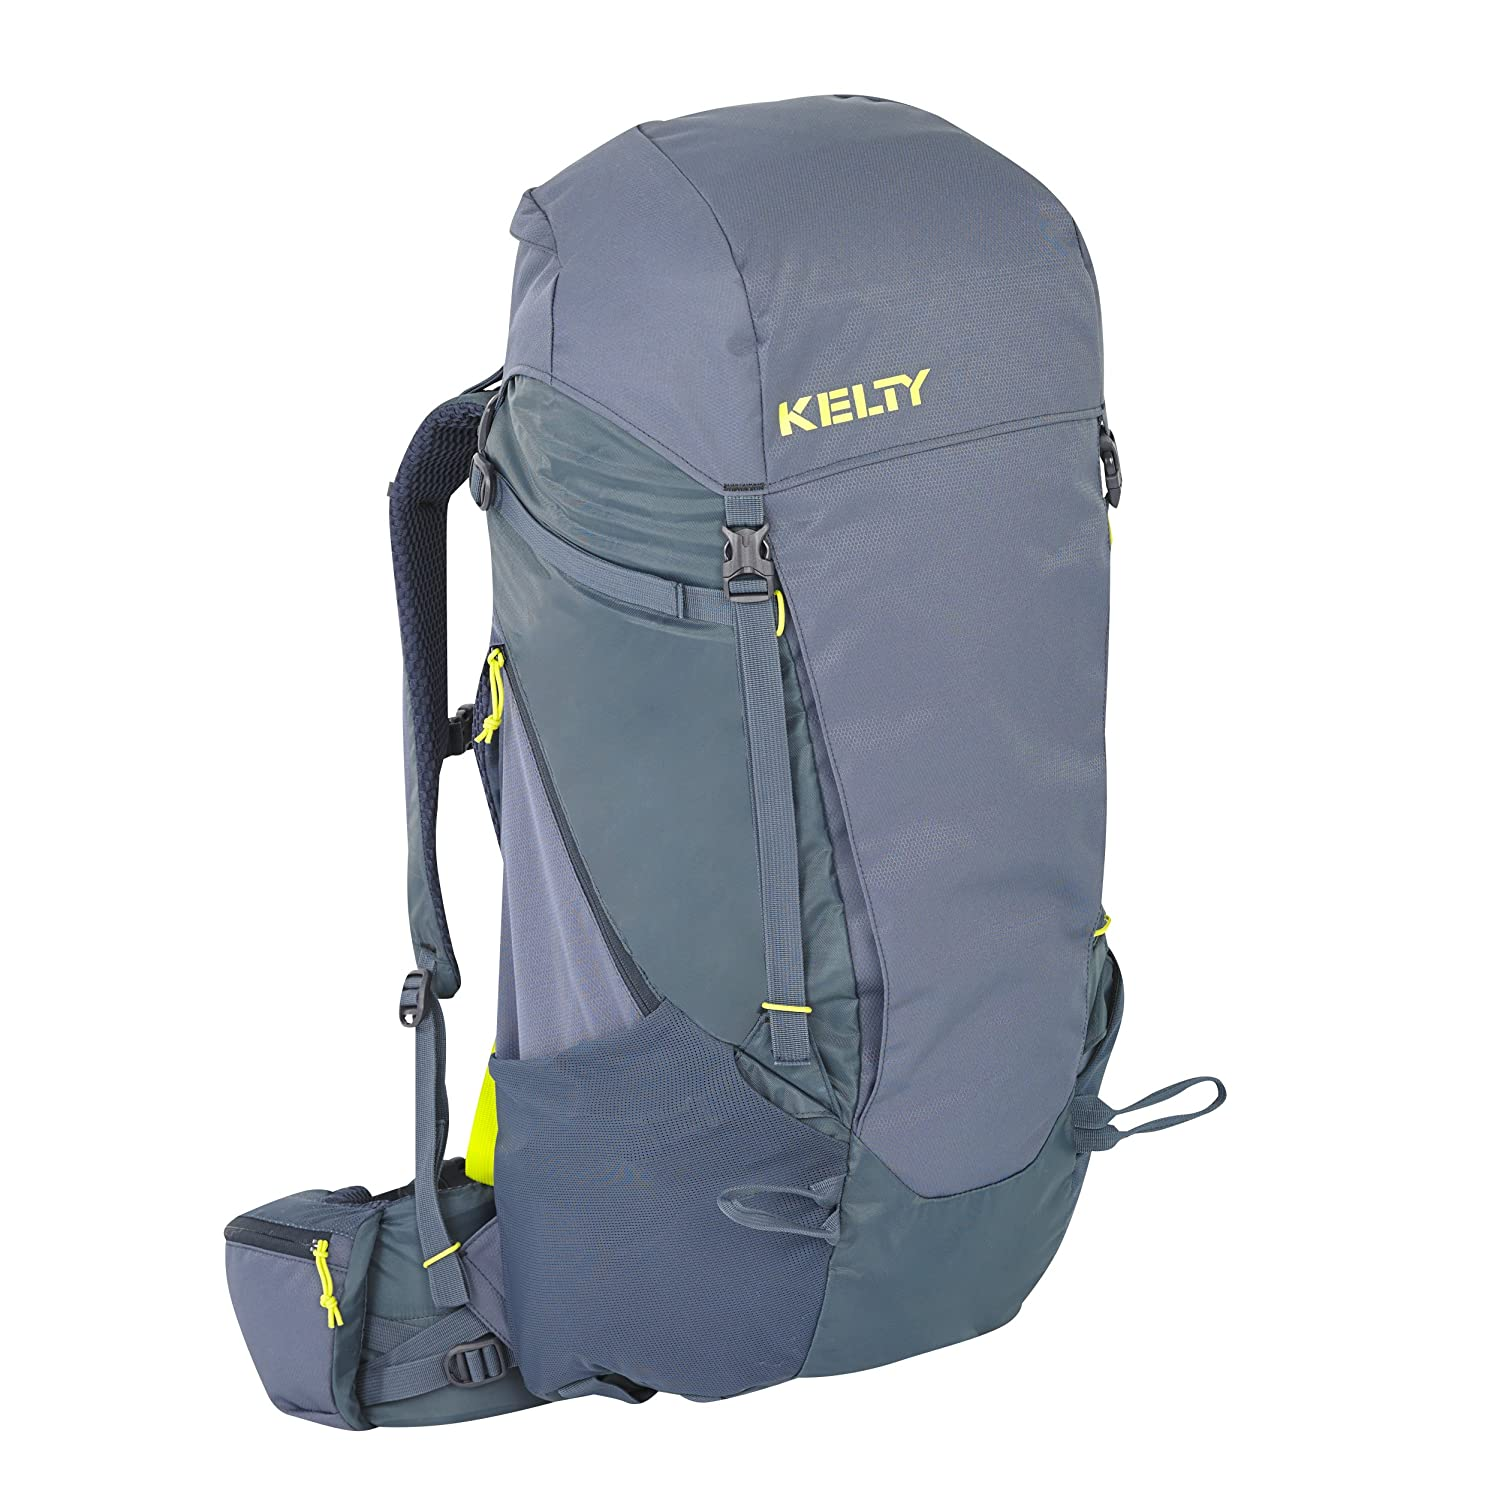 70ce8d1e7f5c Kelty Catalyst 65 Backpack- Fenix Toulouse Handball